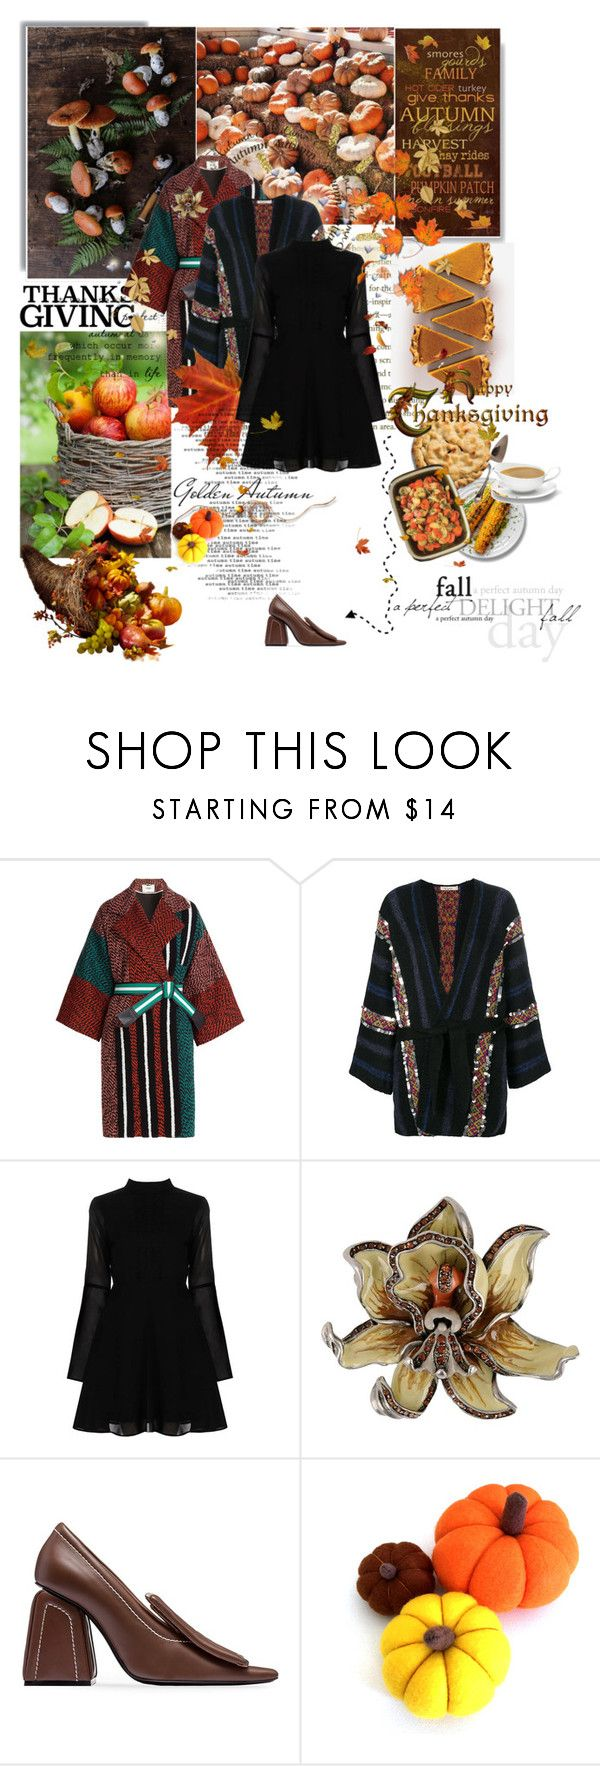 """cinnamon"" by la-rosy ❤ liked on Polyvore featuring Fendi, Mes Demoiselles..., Boohoo, Etro, Marni, Fall, food, autumn, thanksgiving and harvest"